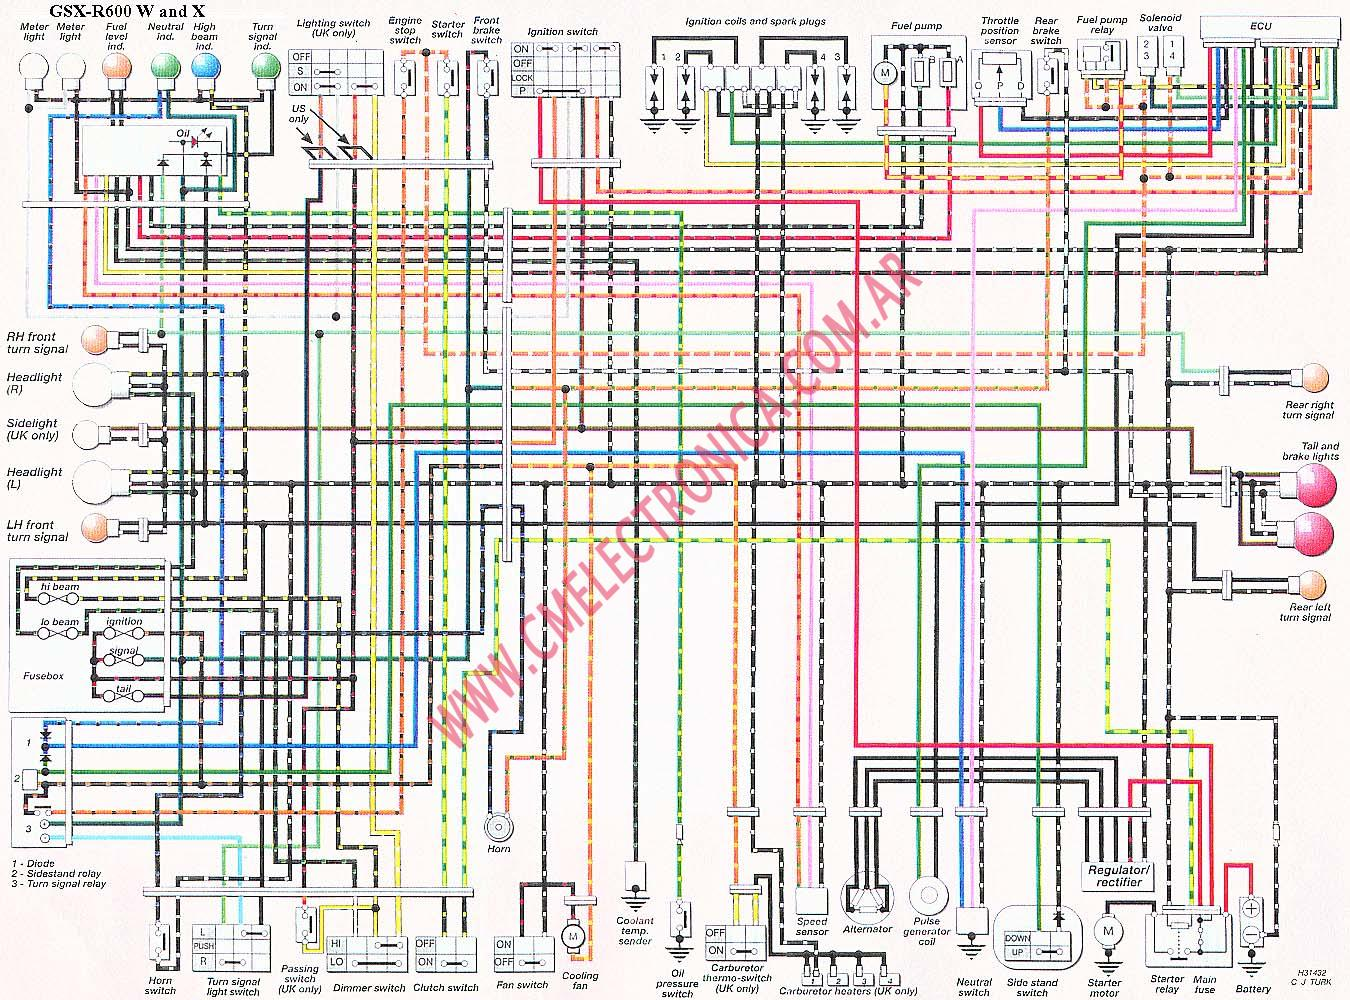 r1 wiring diagram r1 database wiring diagram images suzuki katana 600 wiring diagram